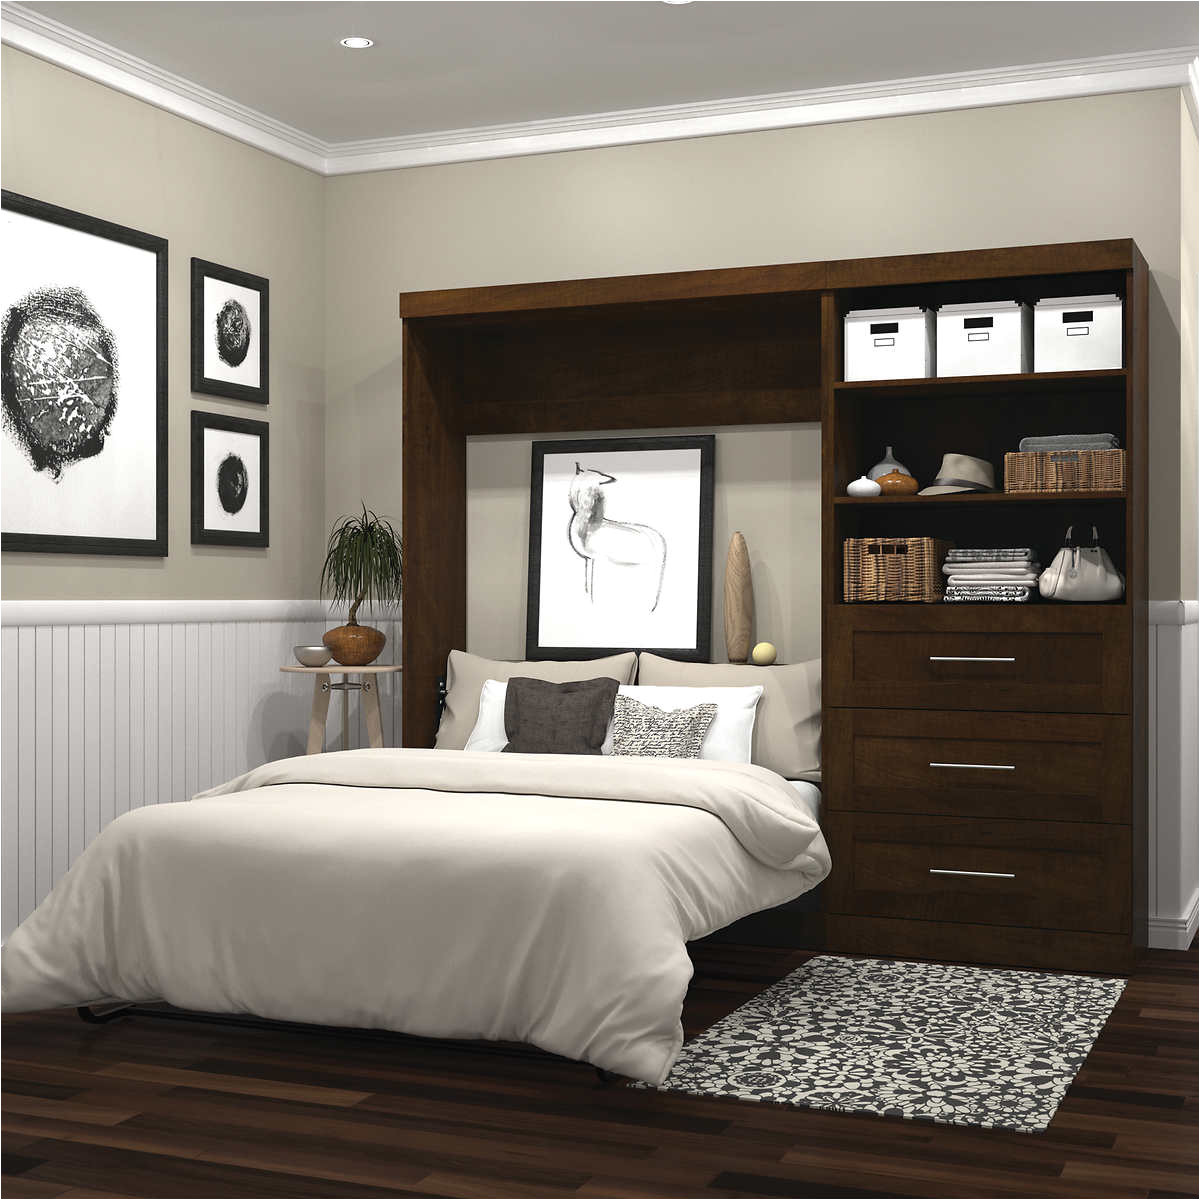 frames ikea hide murphy beds denver houston free bedroom furniture cupboard glass wall storage small space